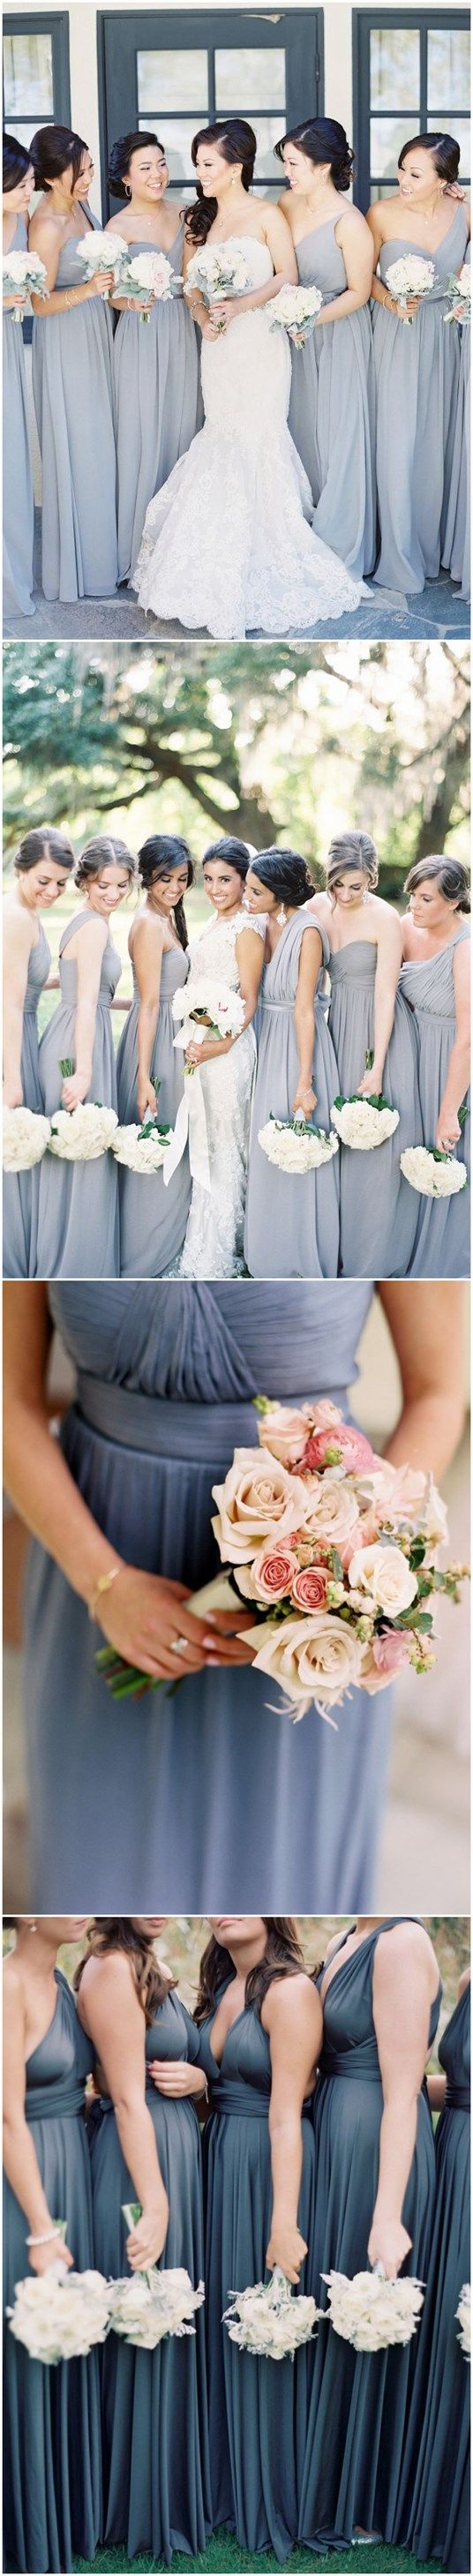 Dusty blue bridesmaid dresses ideas for fall weddings